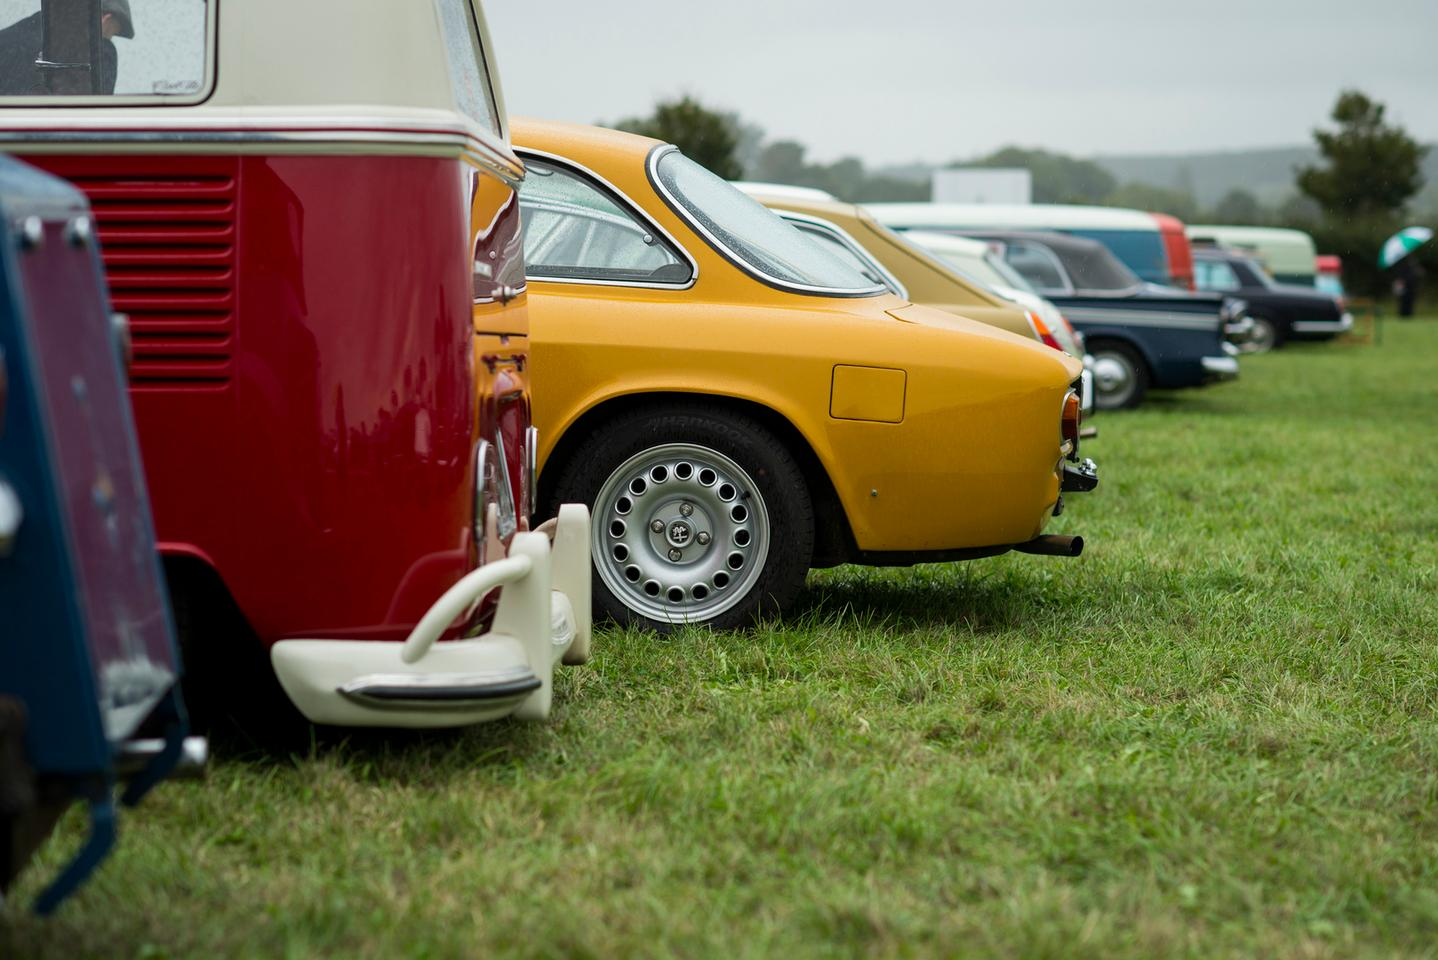 Alfa-Romeos and Volkswagens on the lawn at Goodwood